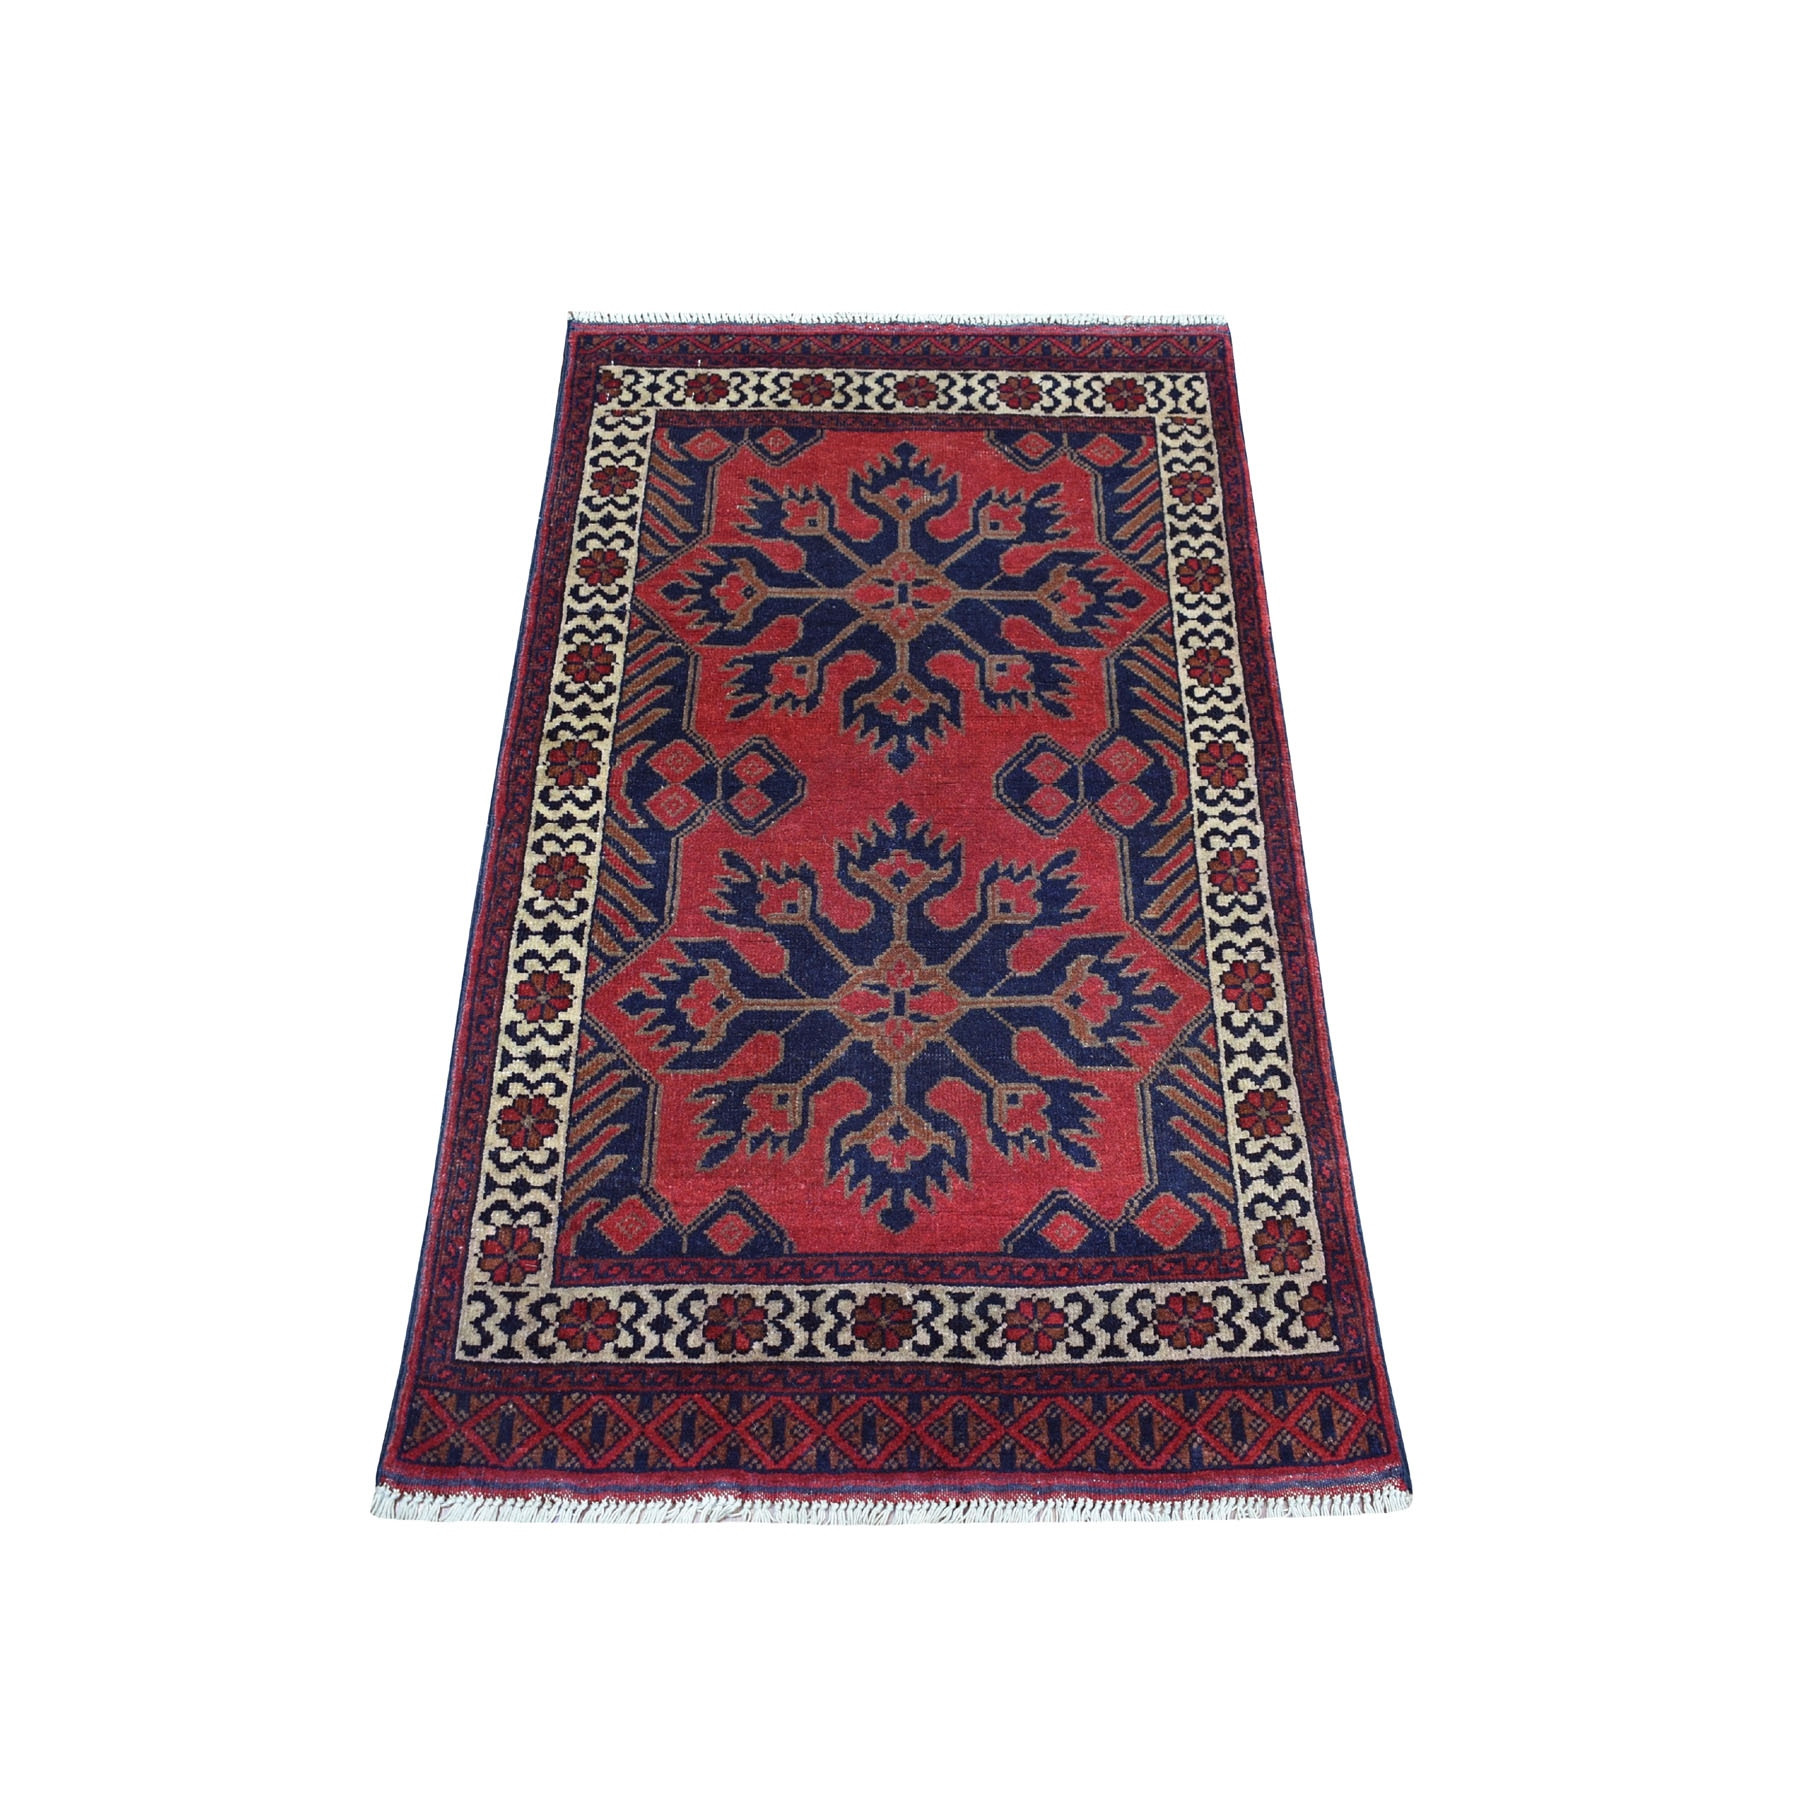 "2'4""x4' Deep and Saturated Red Tribal Afghan Andkhoy Pure Wool Hand Woven Oriental Rug"